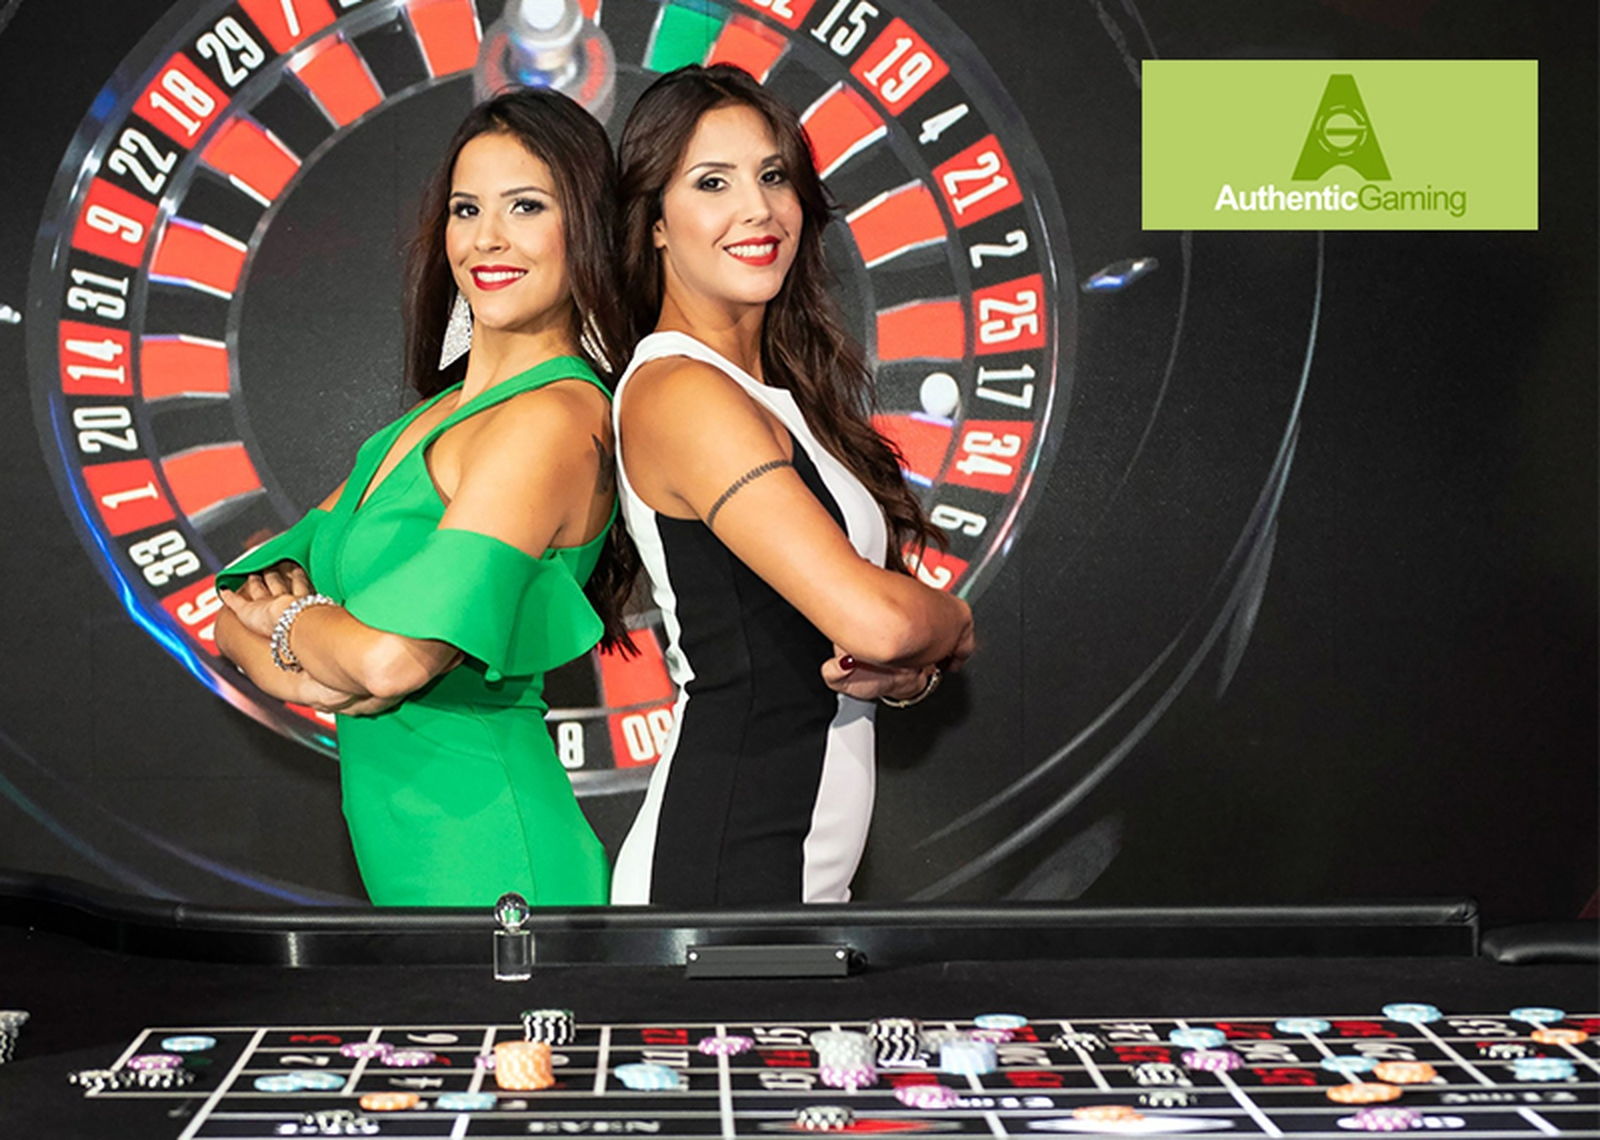 The Auto Roulette Blaze Live Online Slot Demo Game by Authentic Gaming